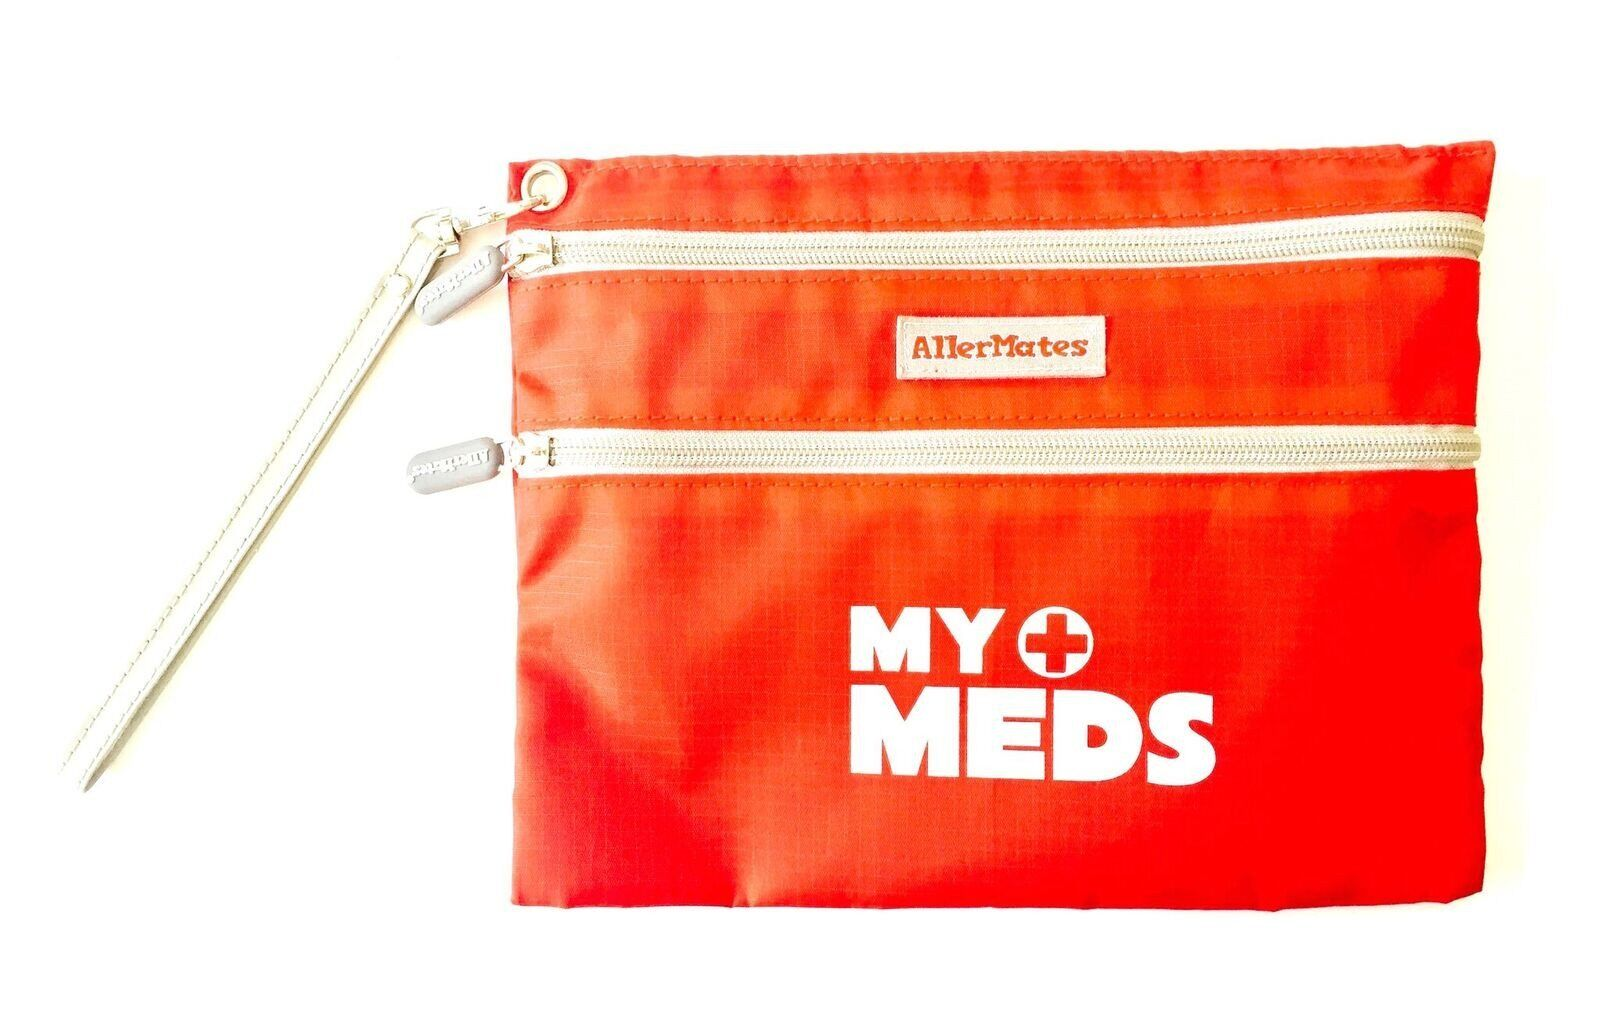 AllerMates My Meds Medicine Epipen Asthma Inhaler Carry Case